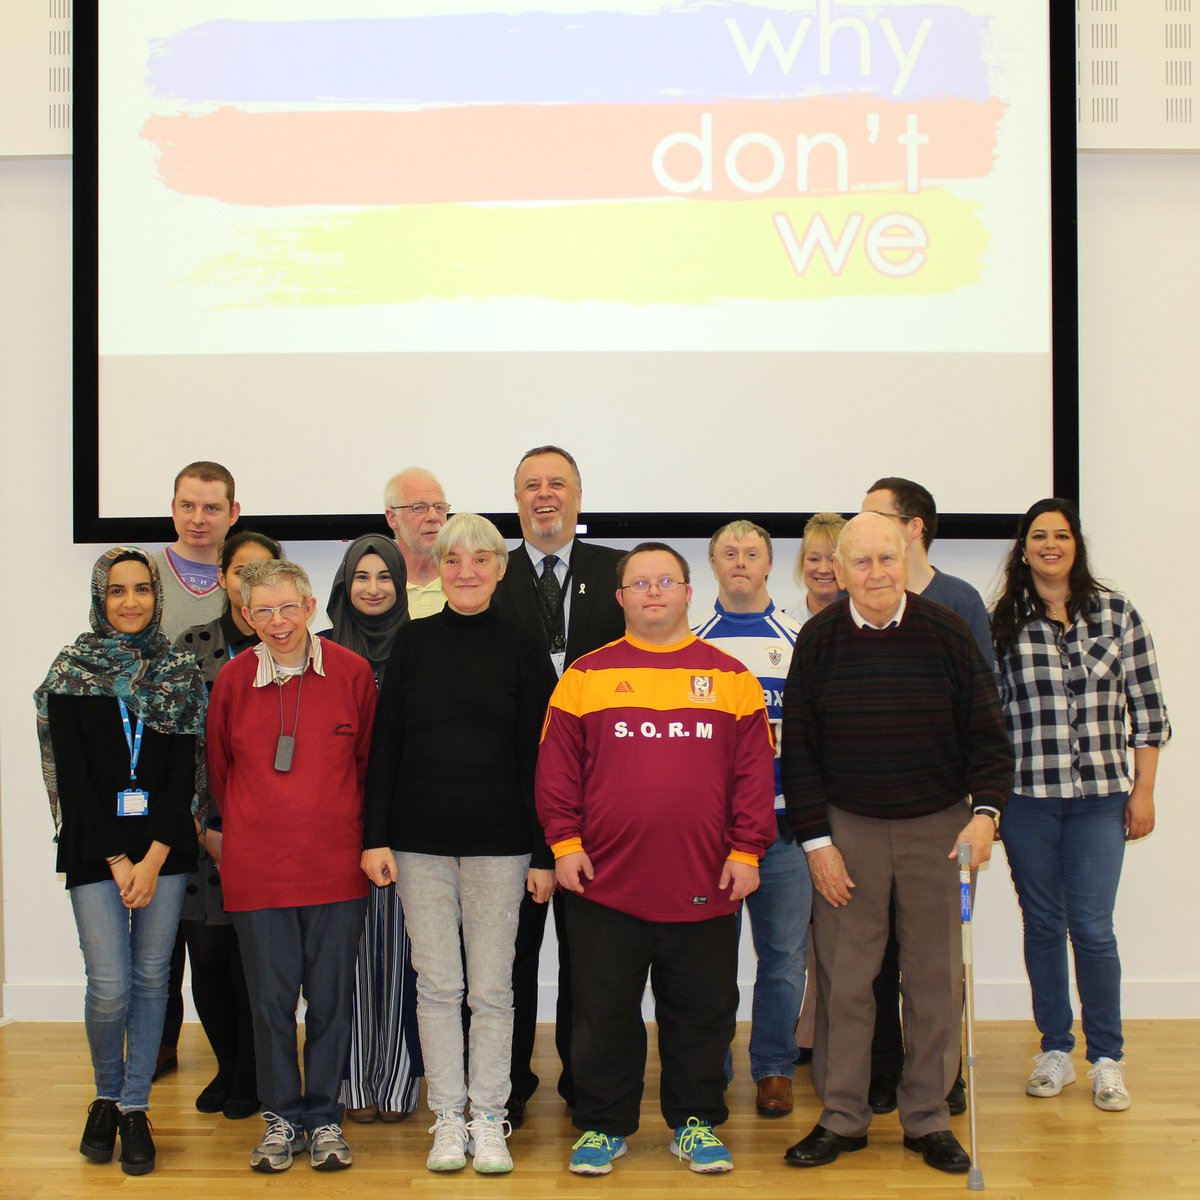 News: Mark&#39;s Safer Communities Fund helps #Bradford charity tackle hate and &#39;mate&#39; crime Read more  https://www. westyorkshire-pcc.gov.uk/news-events/ne ws/current/pcc%E2%80%99s-safer-communities-fund-helps-bradford-charity-tackle-hate-and-&#39;mate&#39;-crime-(19-oct-2017).aspx &nbsp; …  #HCAW<br>http://pic.twitter.com/epqGZHv6Nu